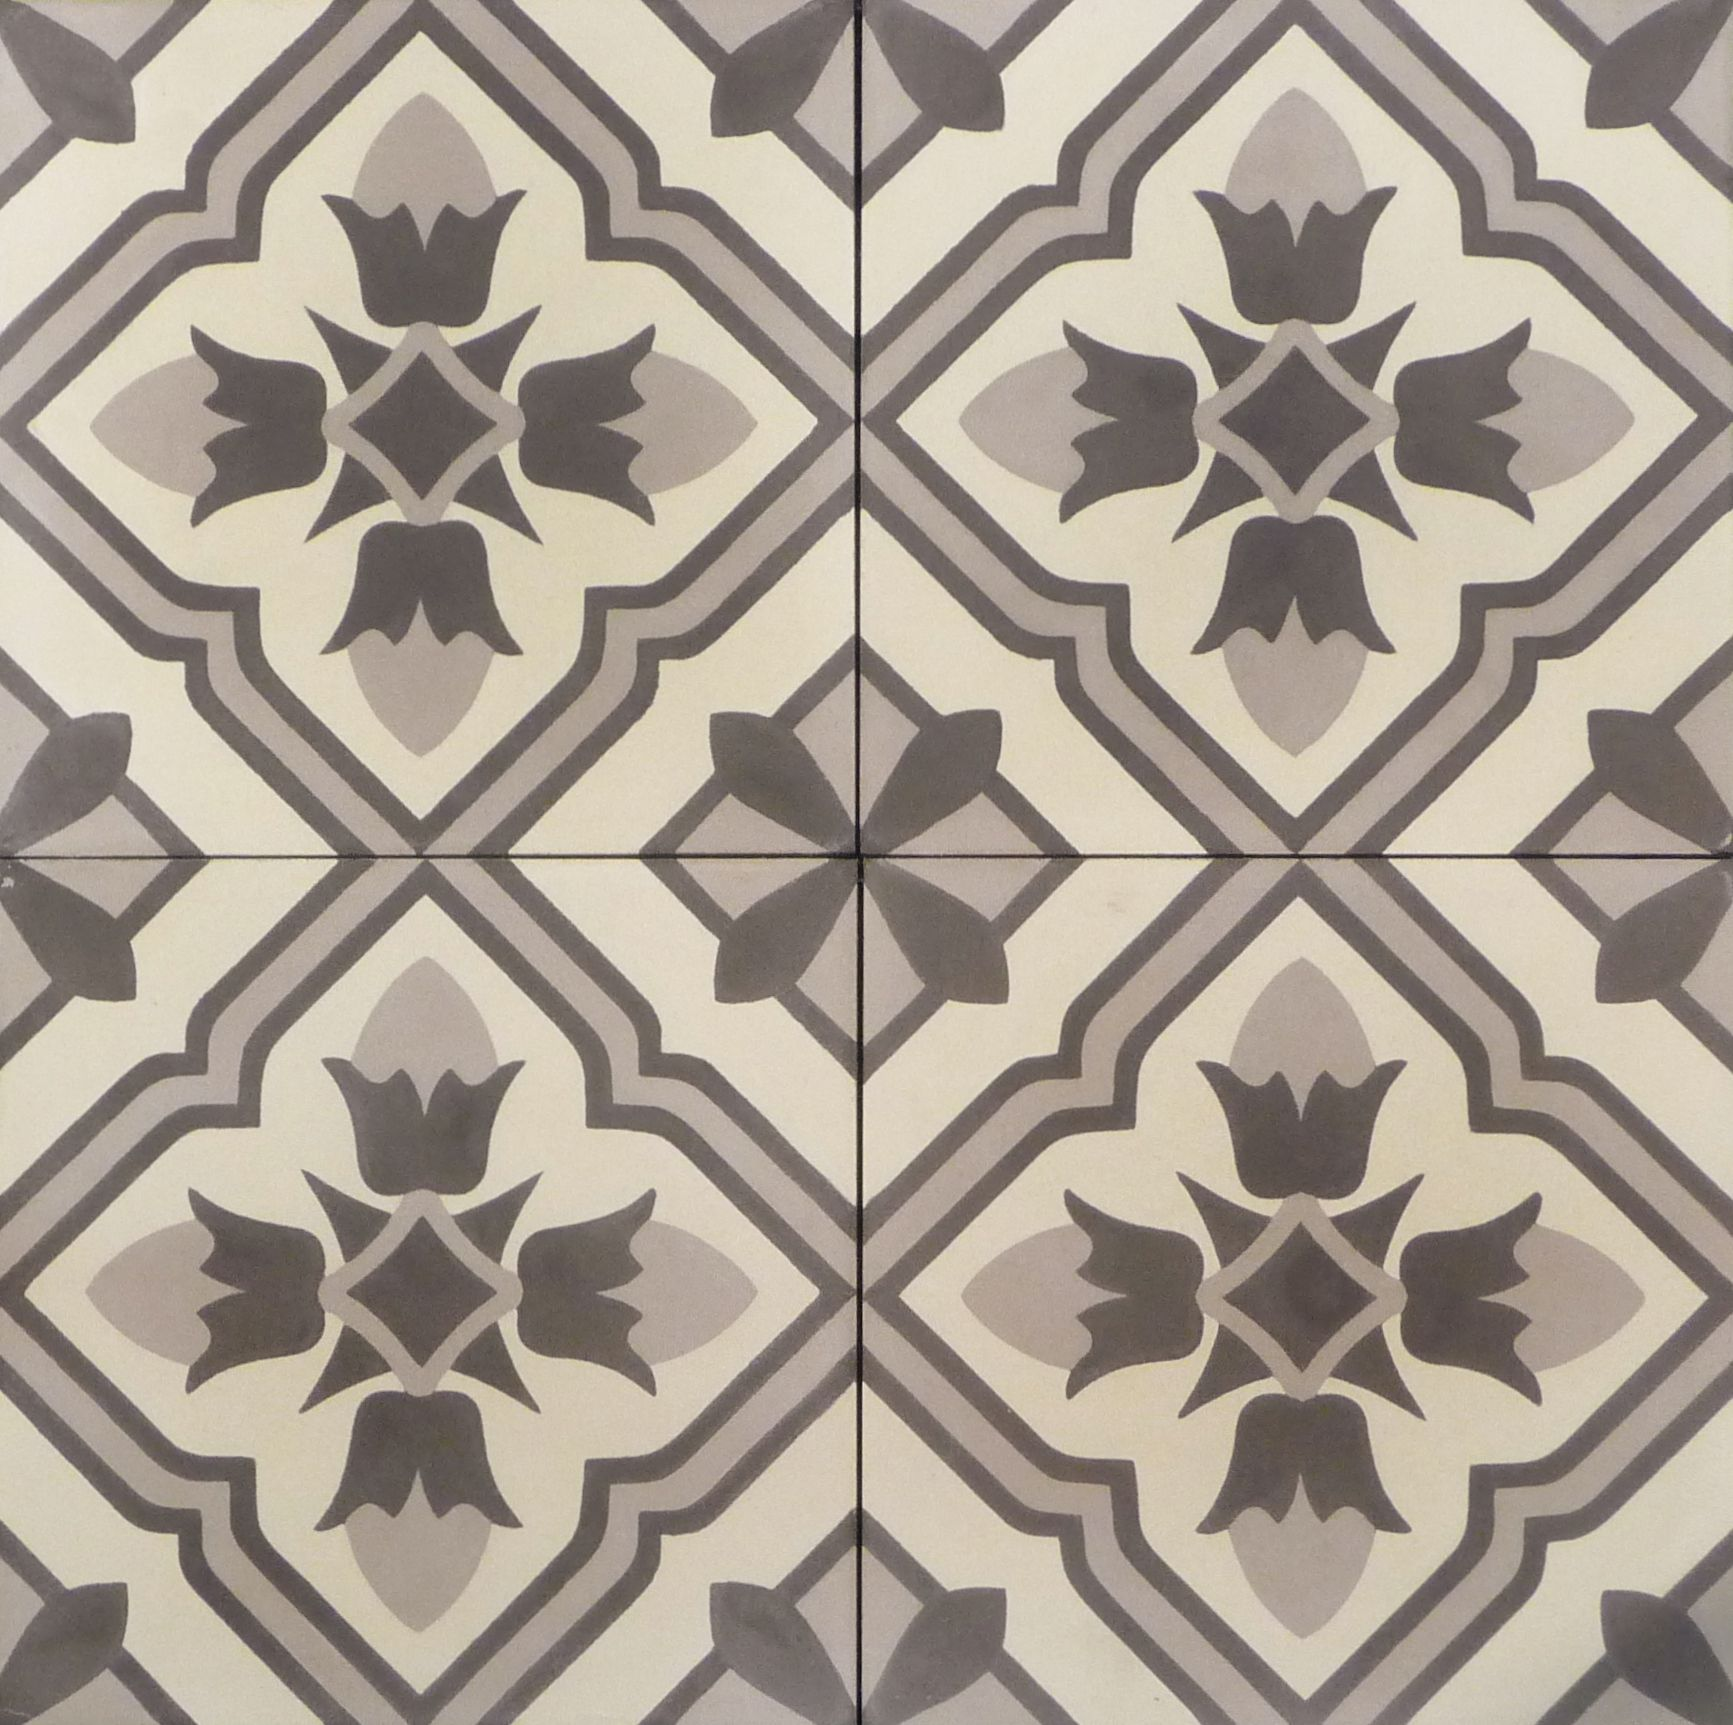 Floor Decor Ideas Lake Tile And More Store Orlando: Noga Cement Tiles